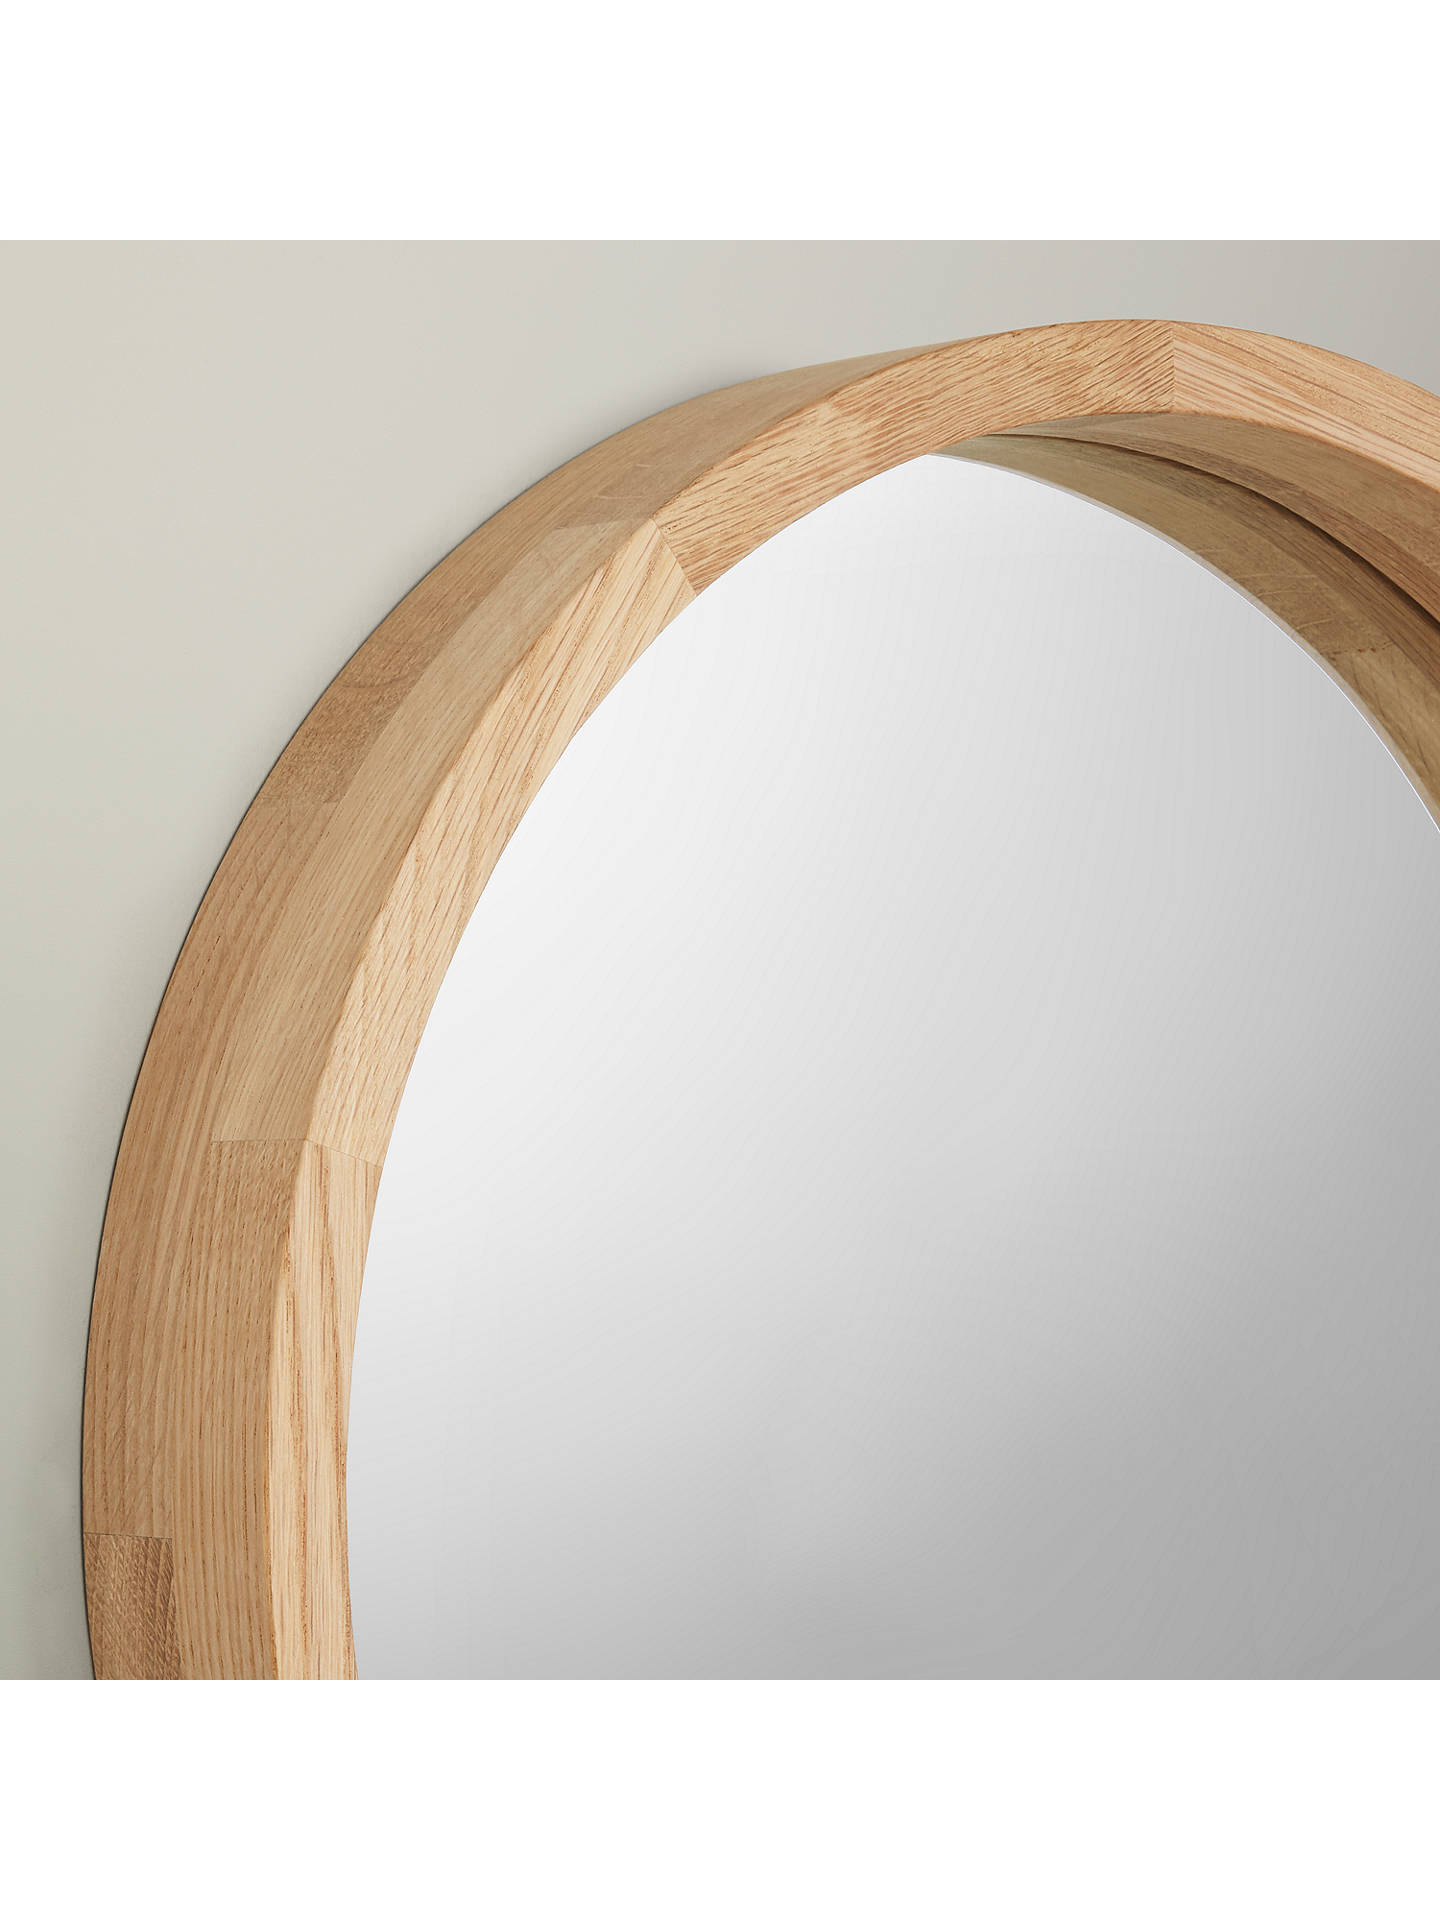 Buy John Lewis & Partners Small Round Mirror, Dia.46cm, Oak Wood Online at johnlewis.com